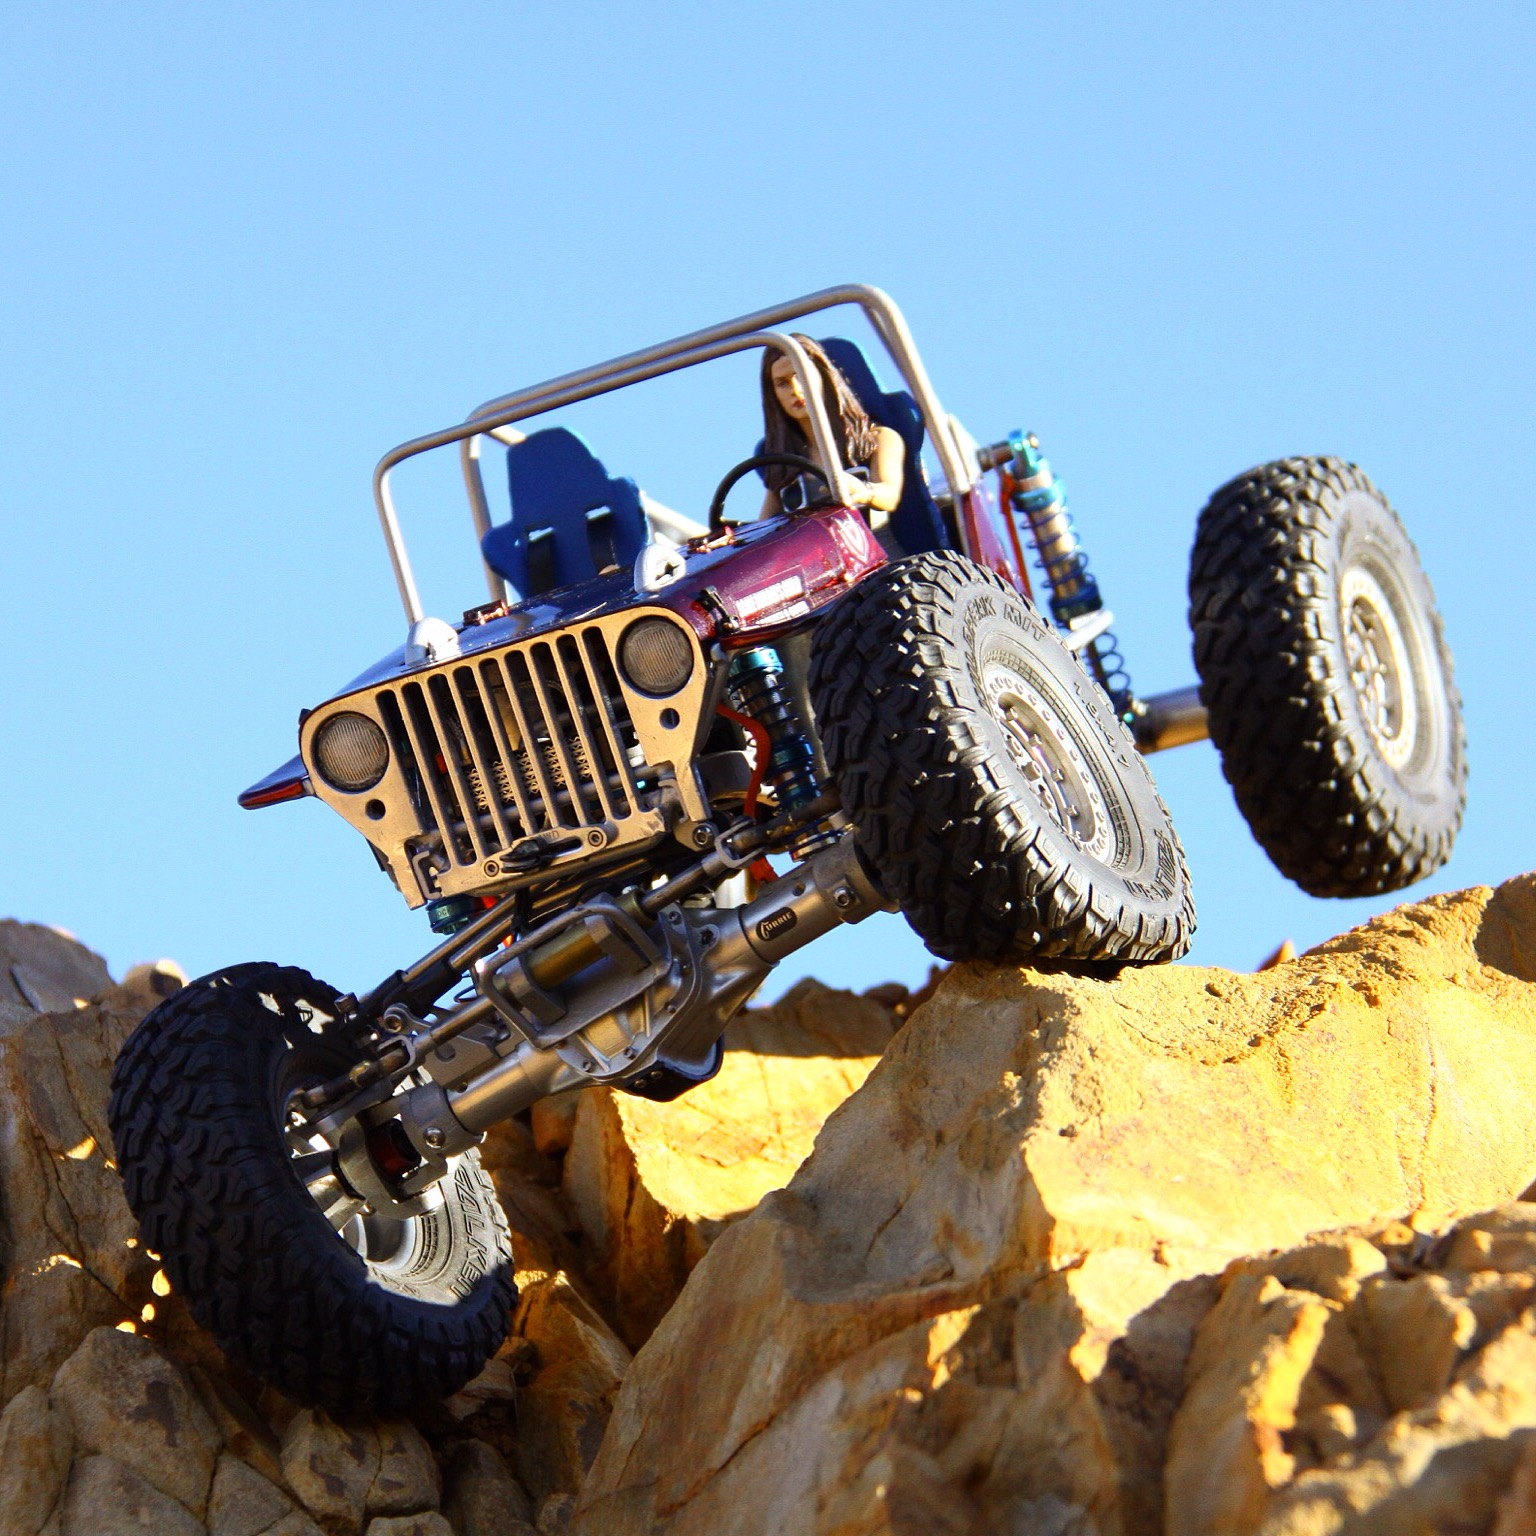 Axial SCX10-based CJ Willys Crawler by Warren Fisher [Readers Ride]